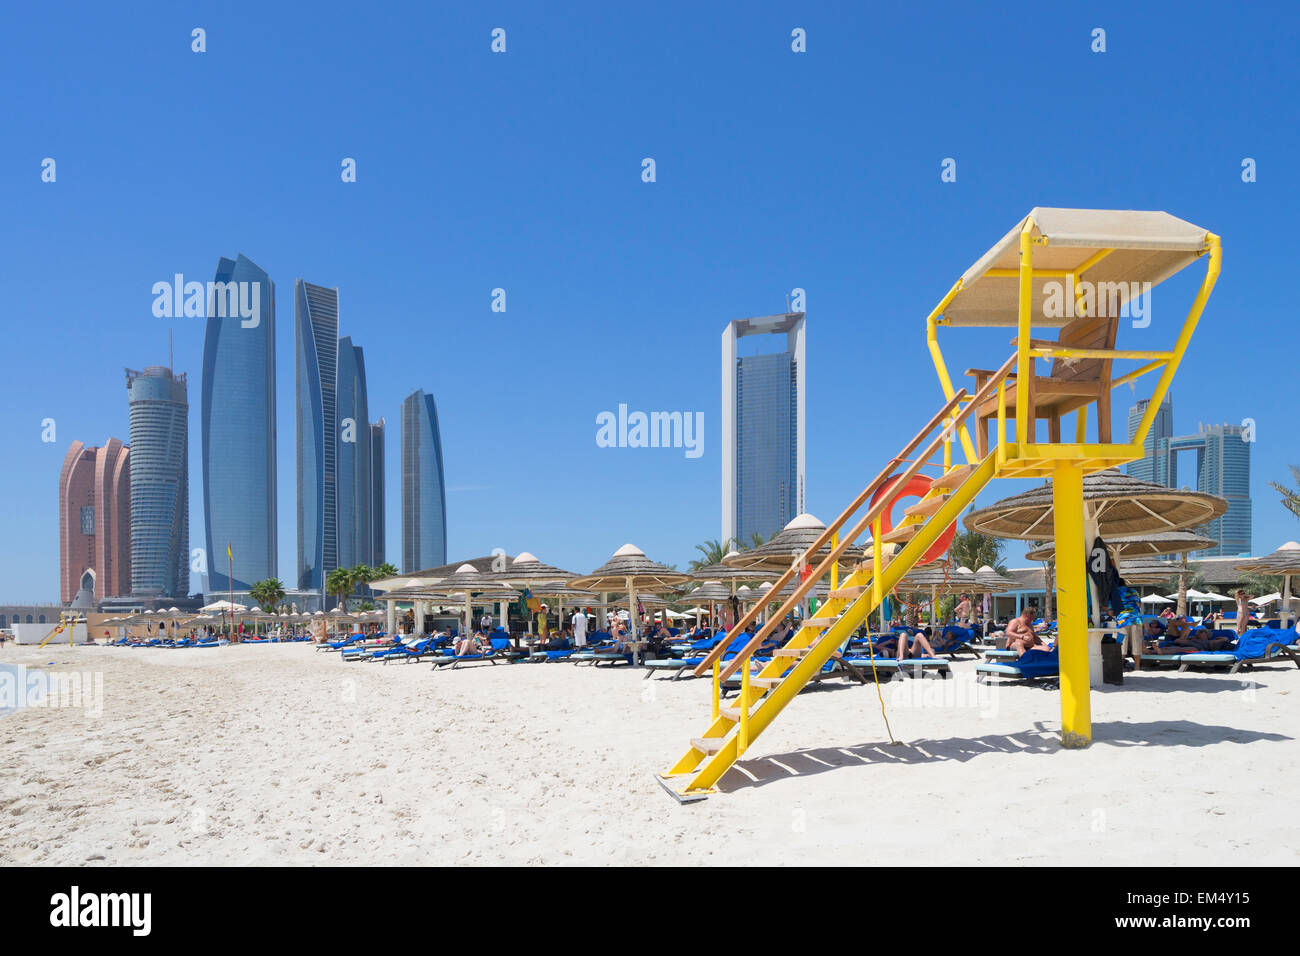 Skyline view of Etihad Towers from luxury hotel beach in Abu Dhabi in United Arab Emirates - Stock Image